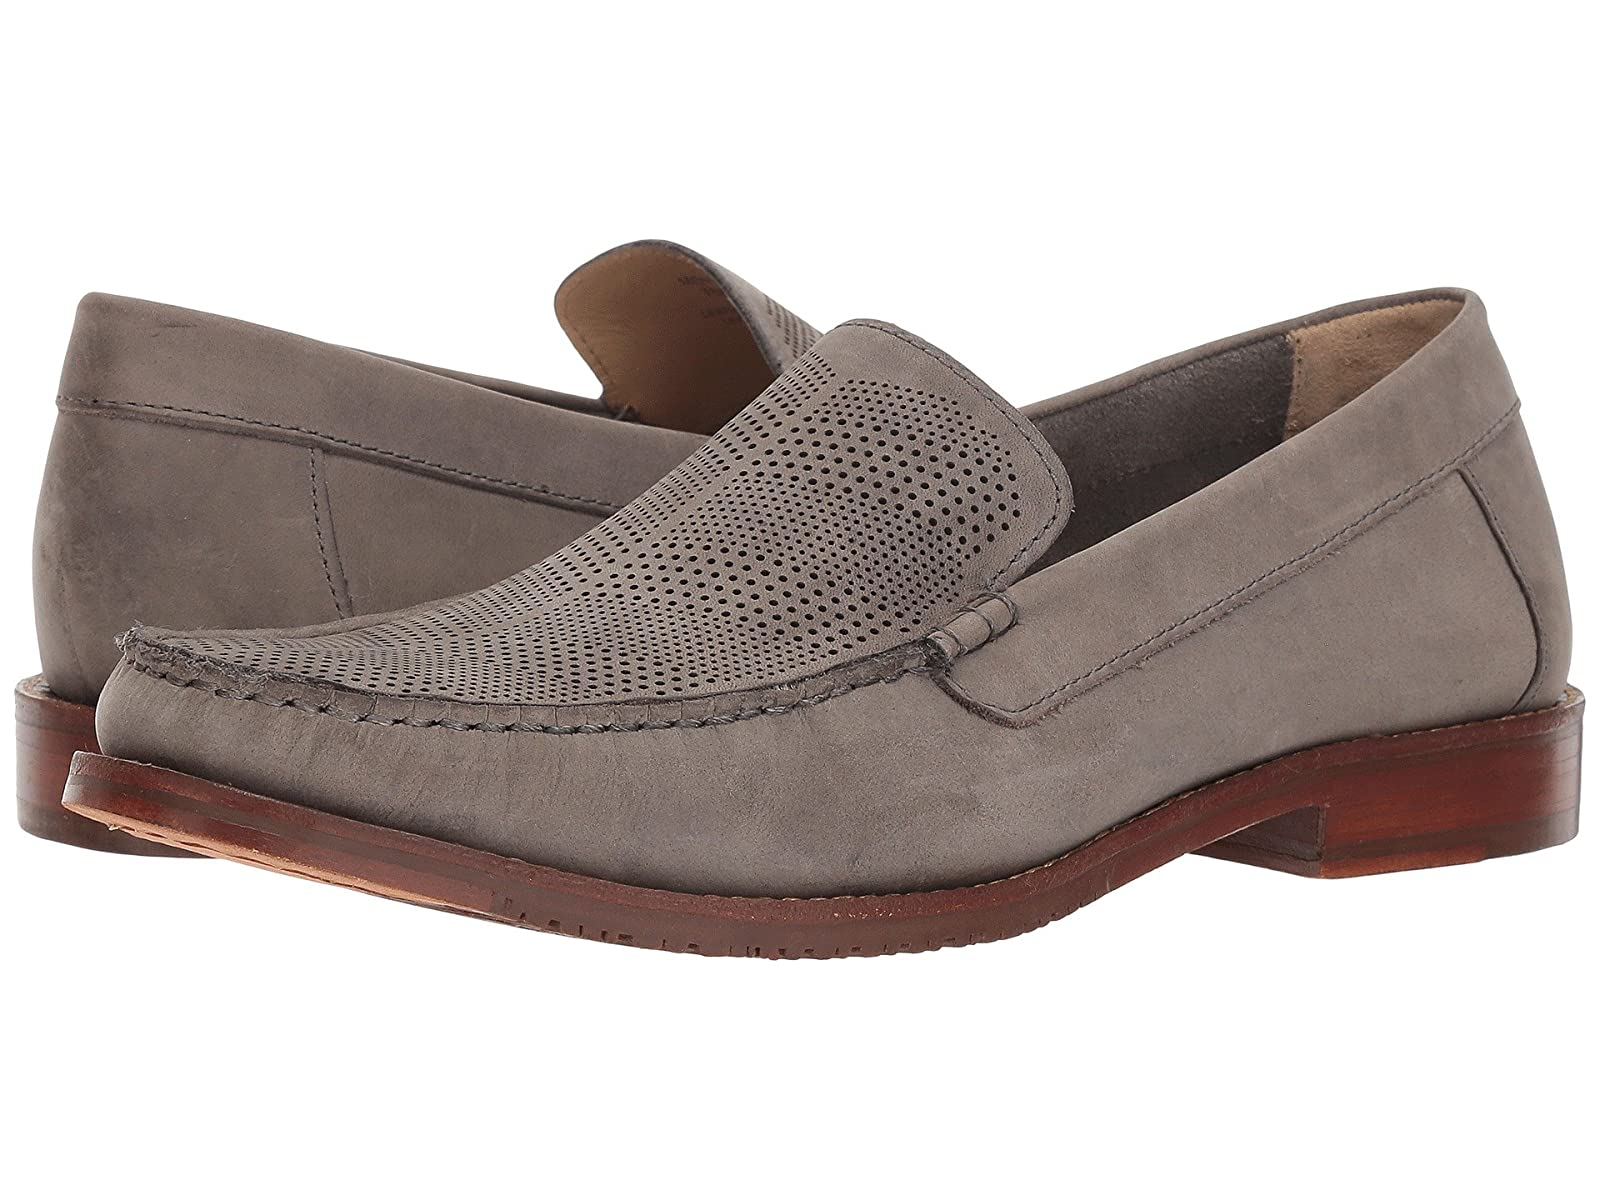 Tommy Bahama Felton 2Atmospheric grades have affordable shoes